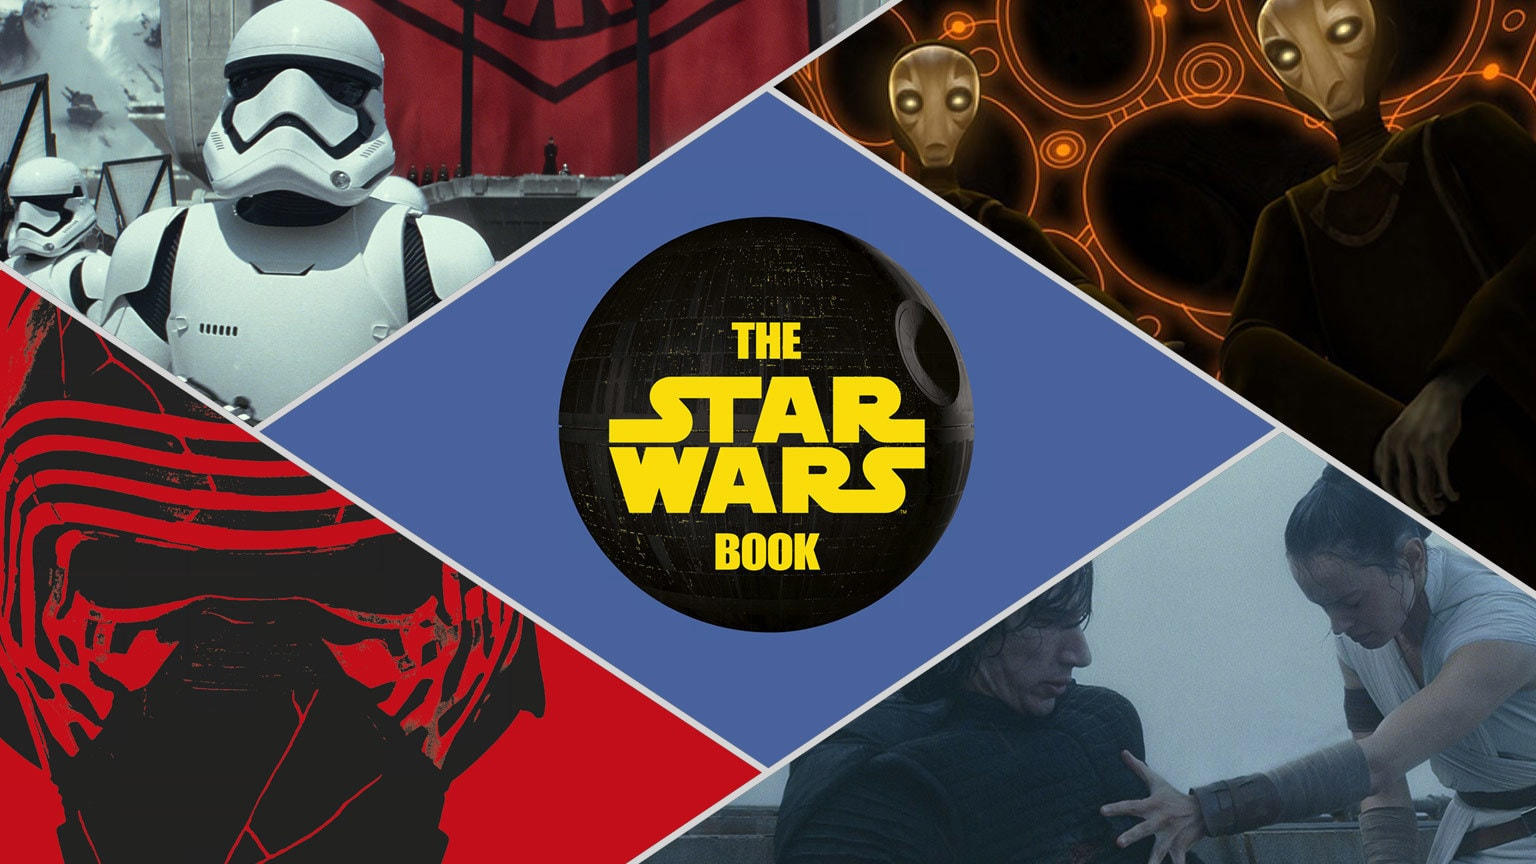 8 Secrets and Fun Facts We Learned from The Star Wars Book